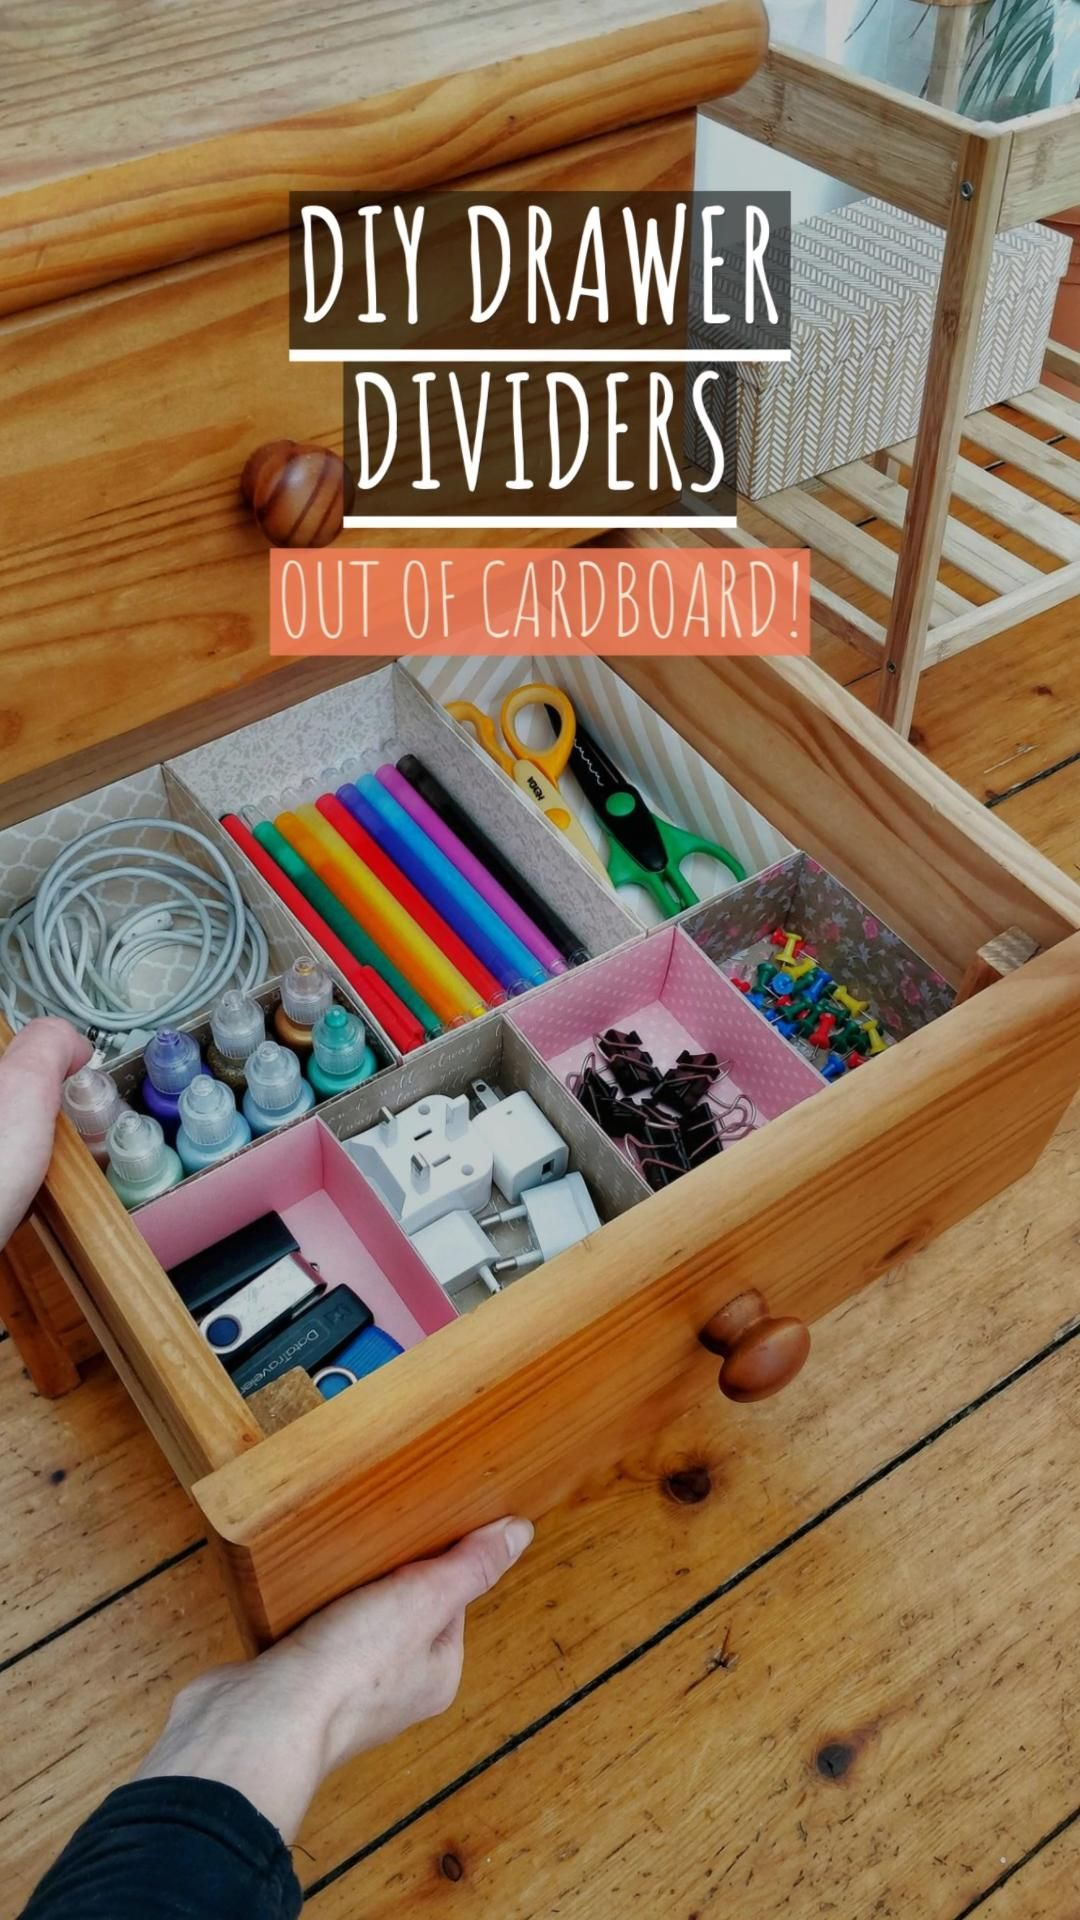 DIY Drawer Dividers Out of Cardboard